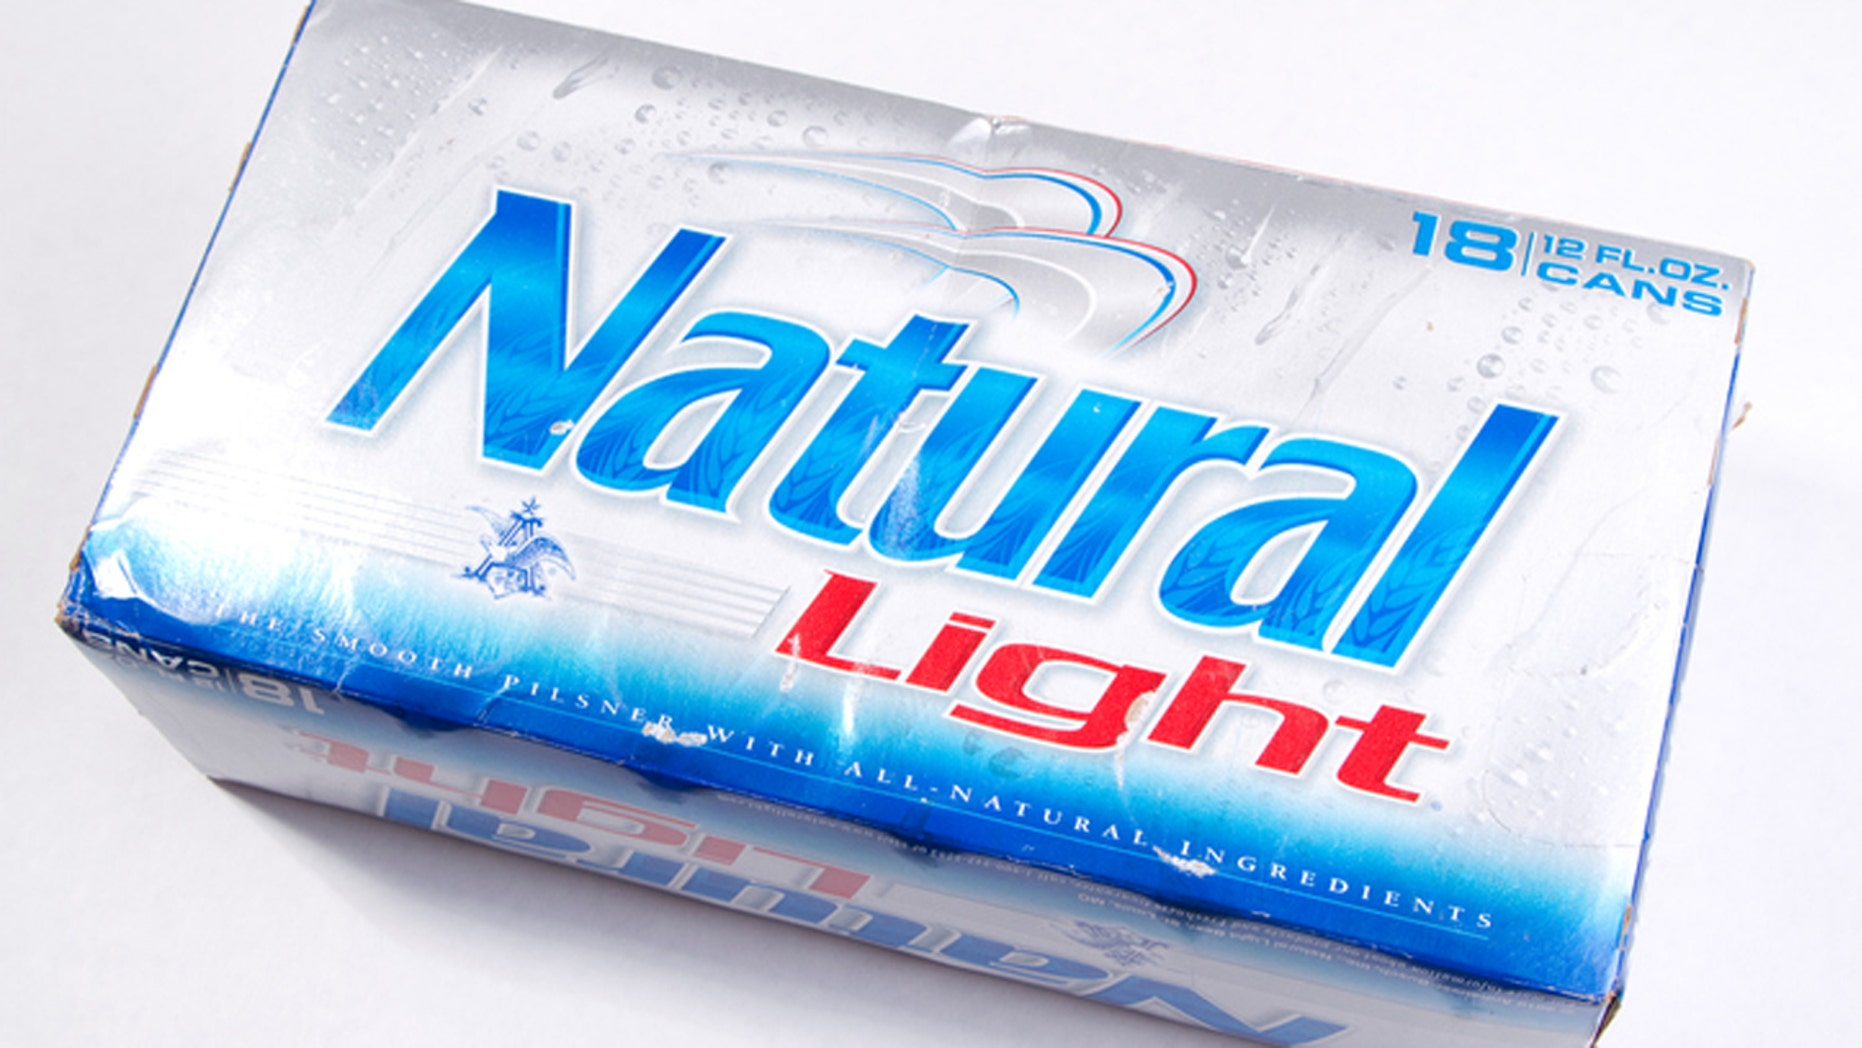 Seattle, Washington, United States - August 20, 2011: Unopened 18 Pack of Natural Light Beer isolated on white.